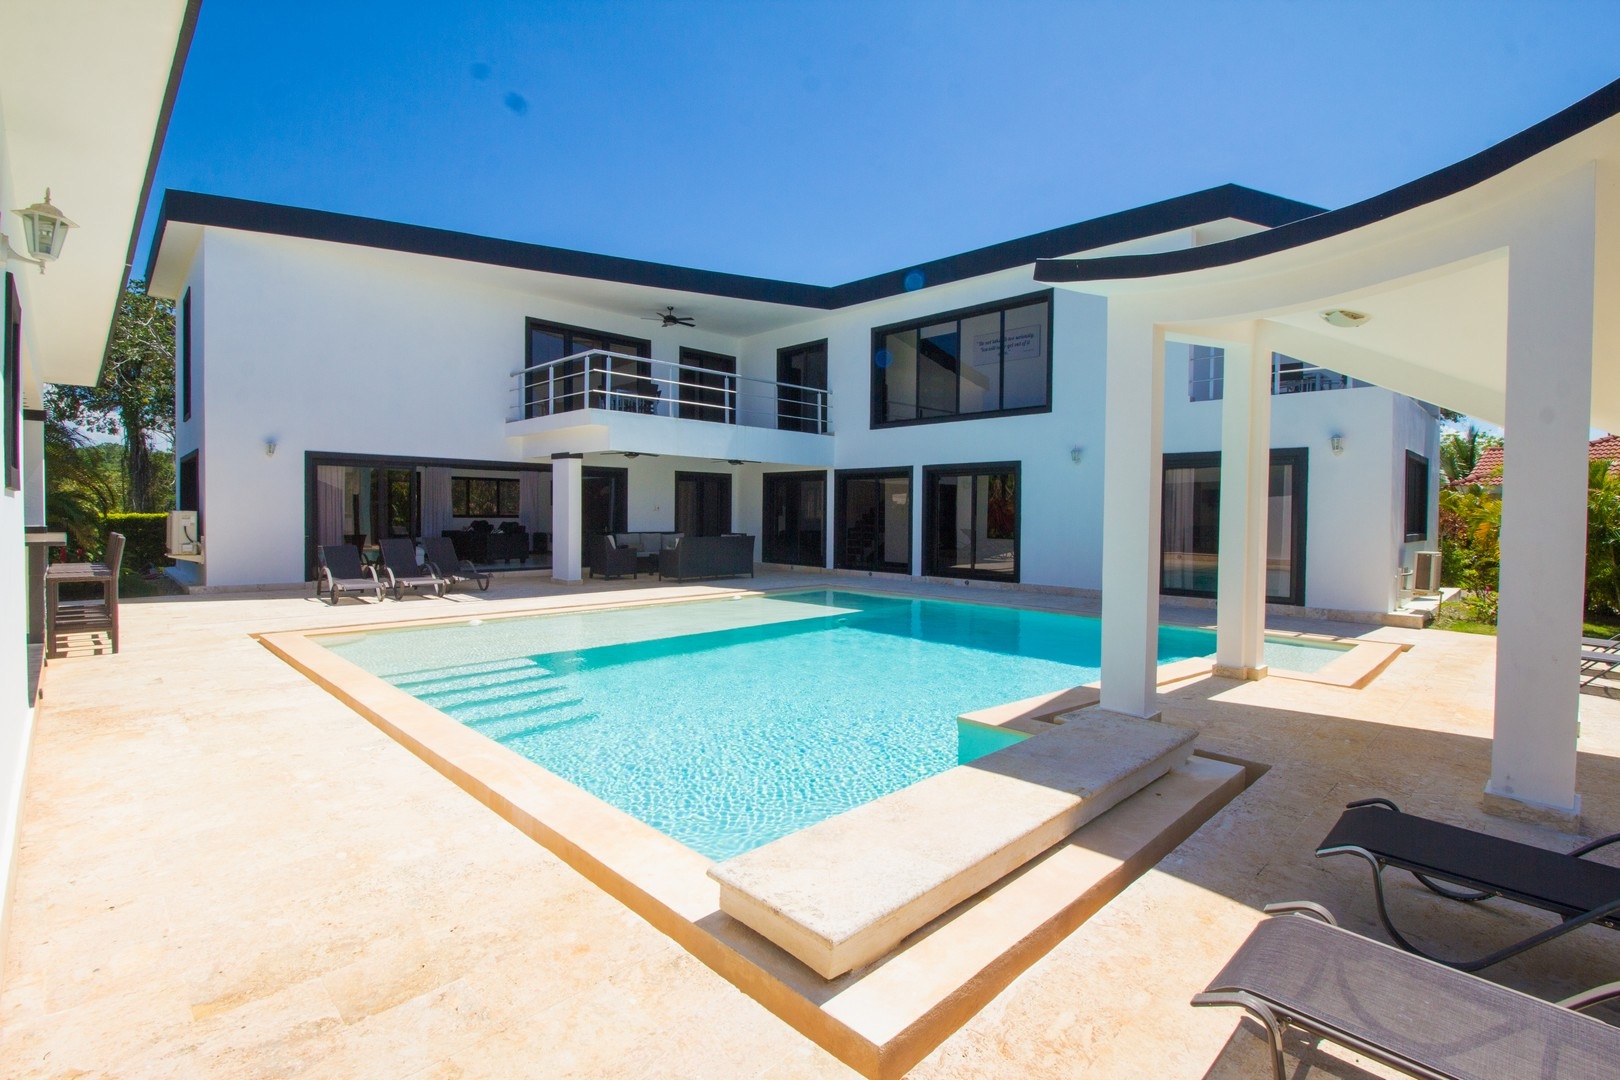 4 Bedroom Contemporary Villa Rental Sosua